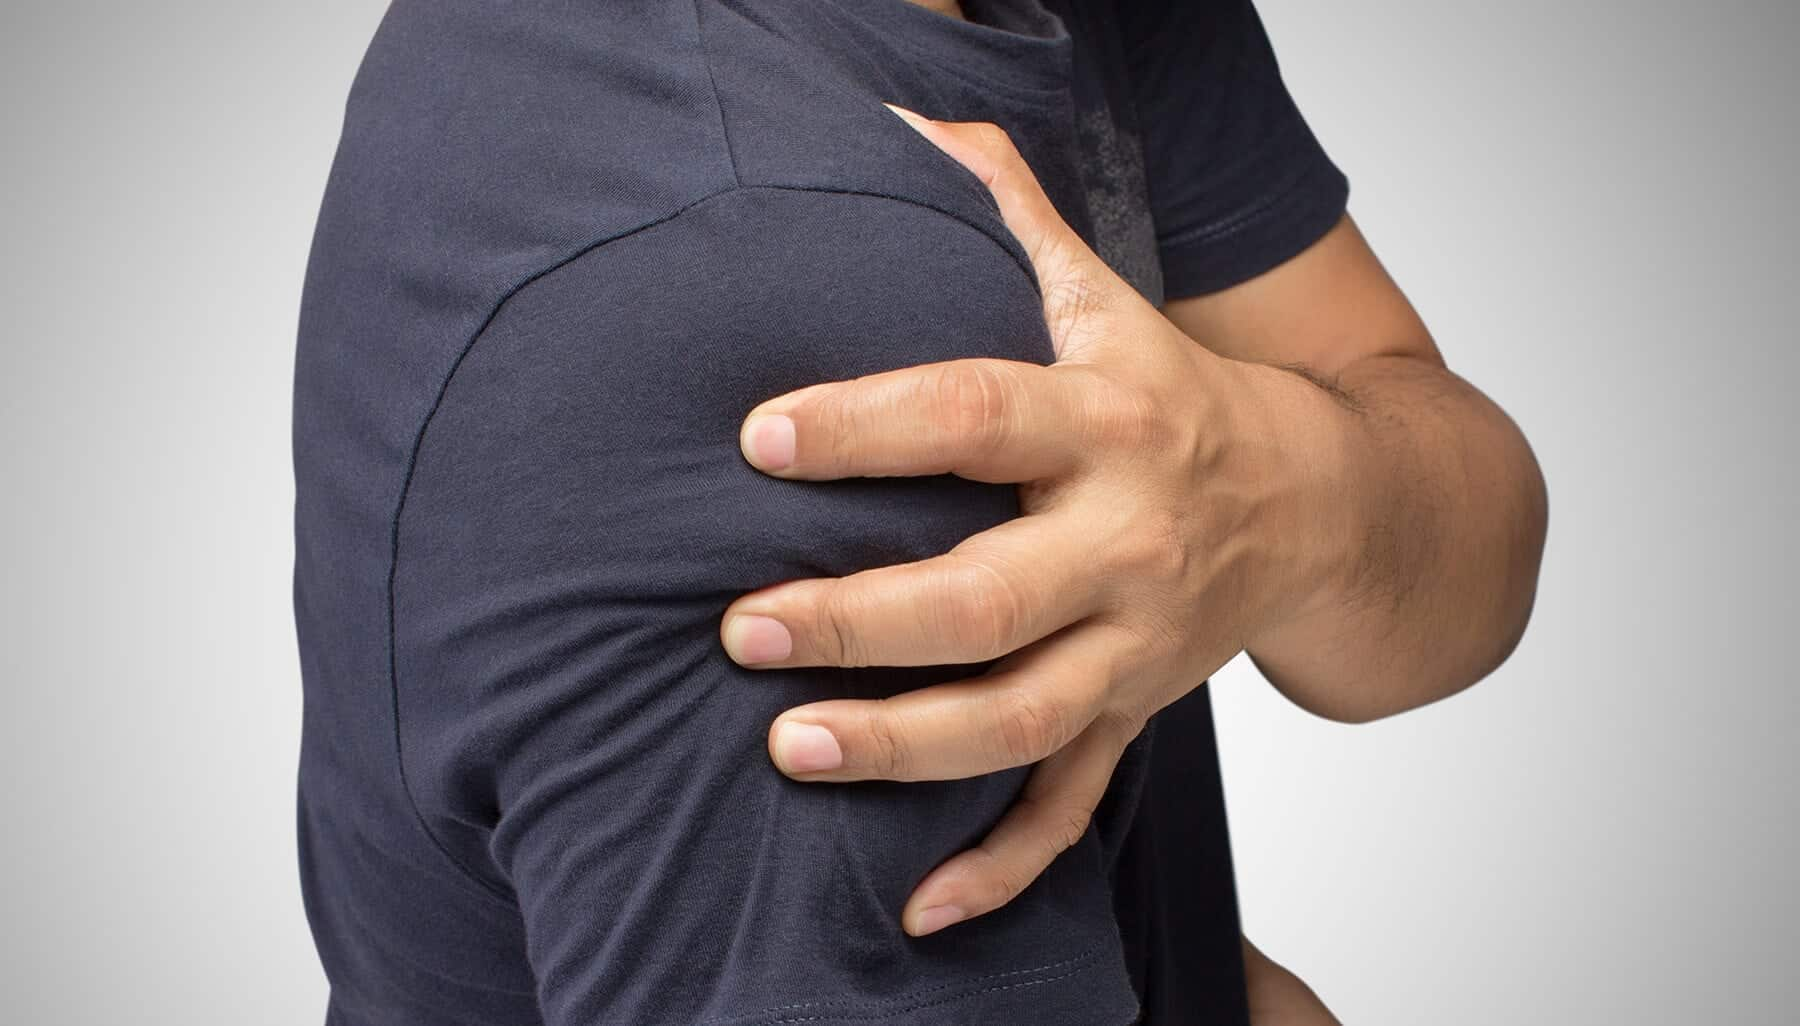 shoulder pain from sleeping on side